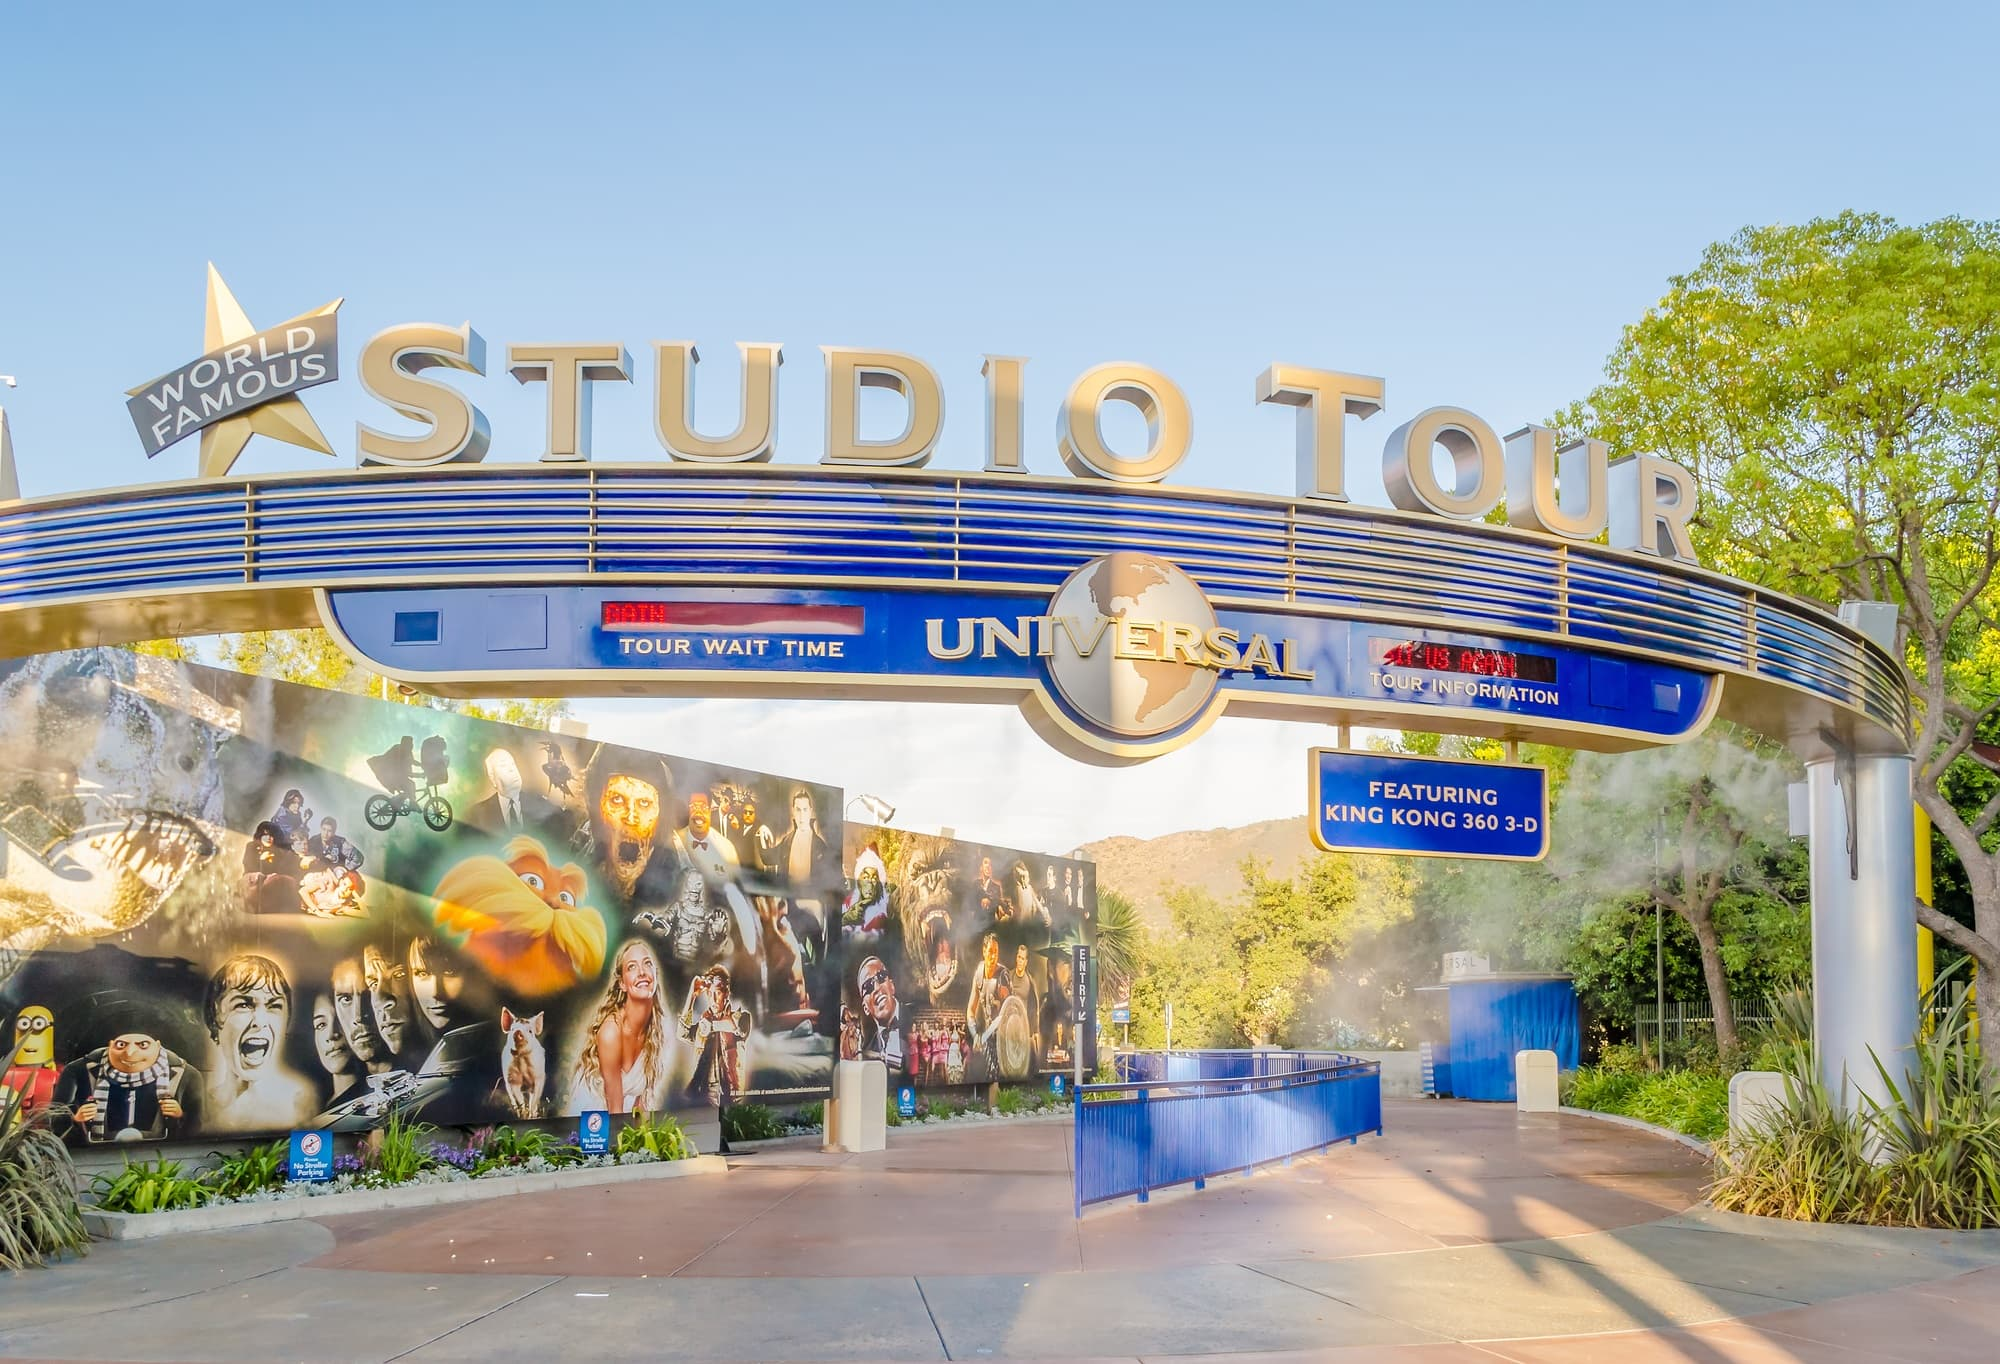 The Studio Tour is still one of the star attractions at Universal Studios Hollywood with kids